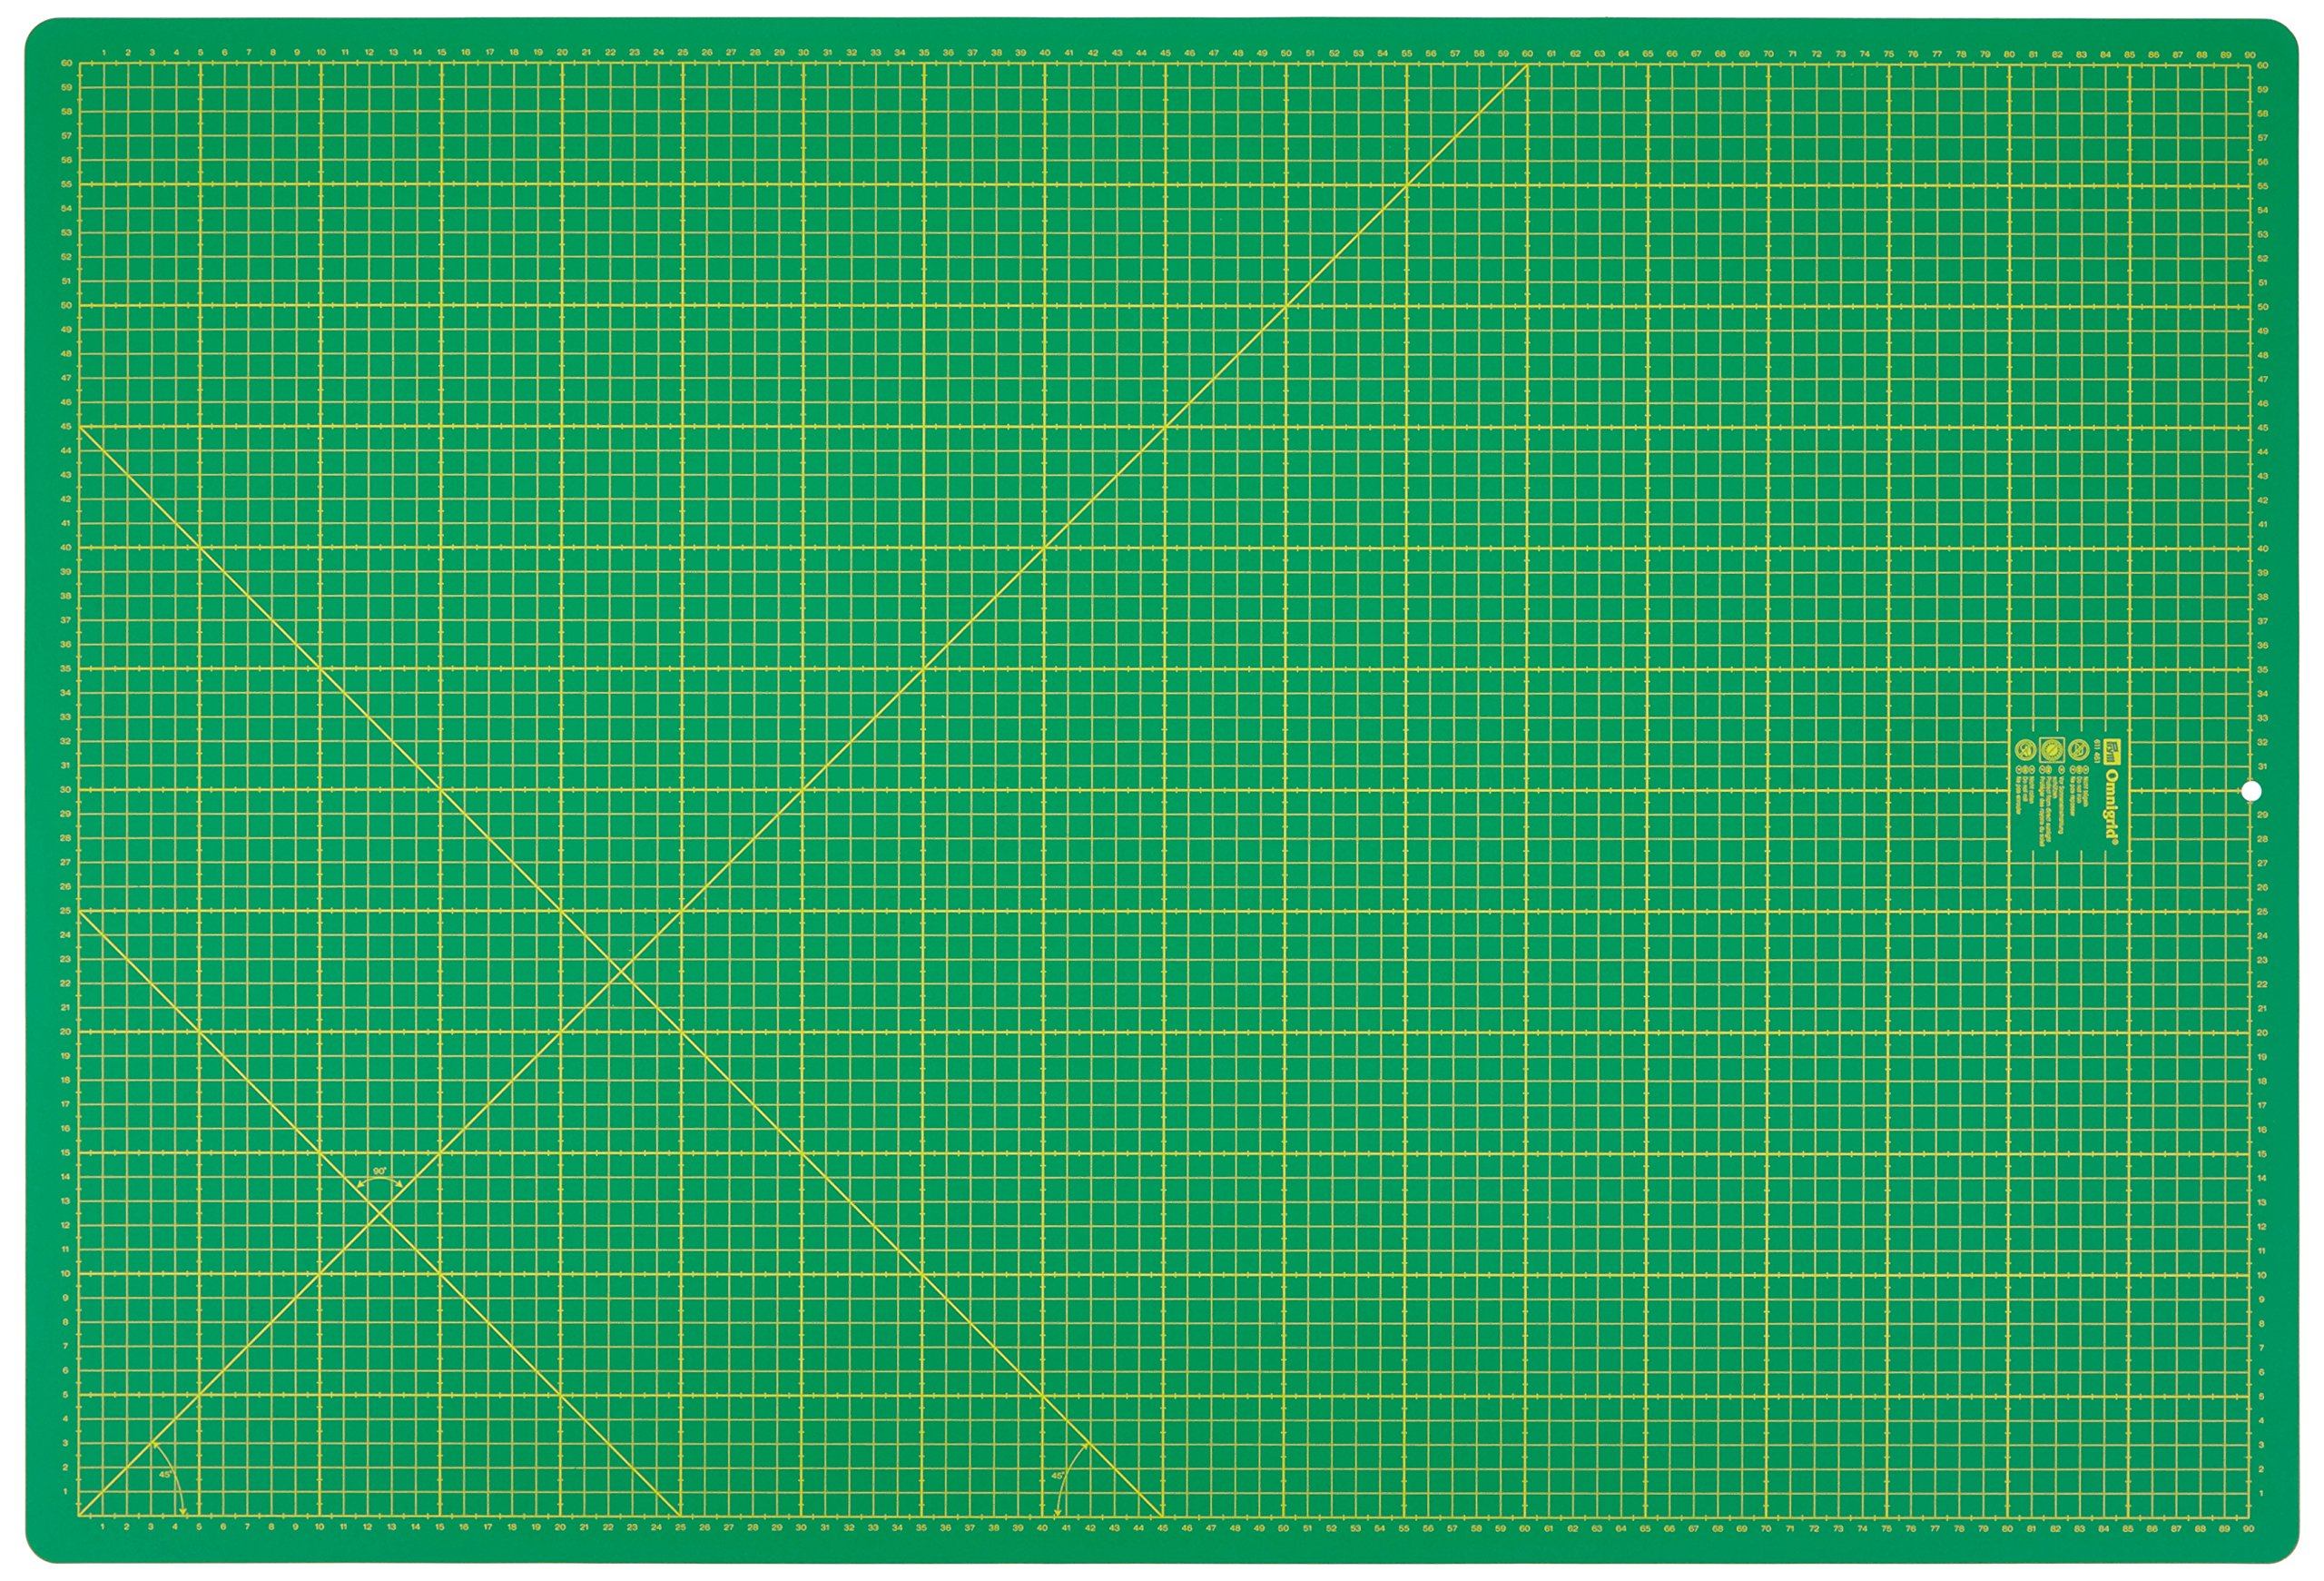 Prym 611461 Cutting mat for rotary cutters